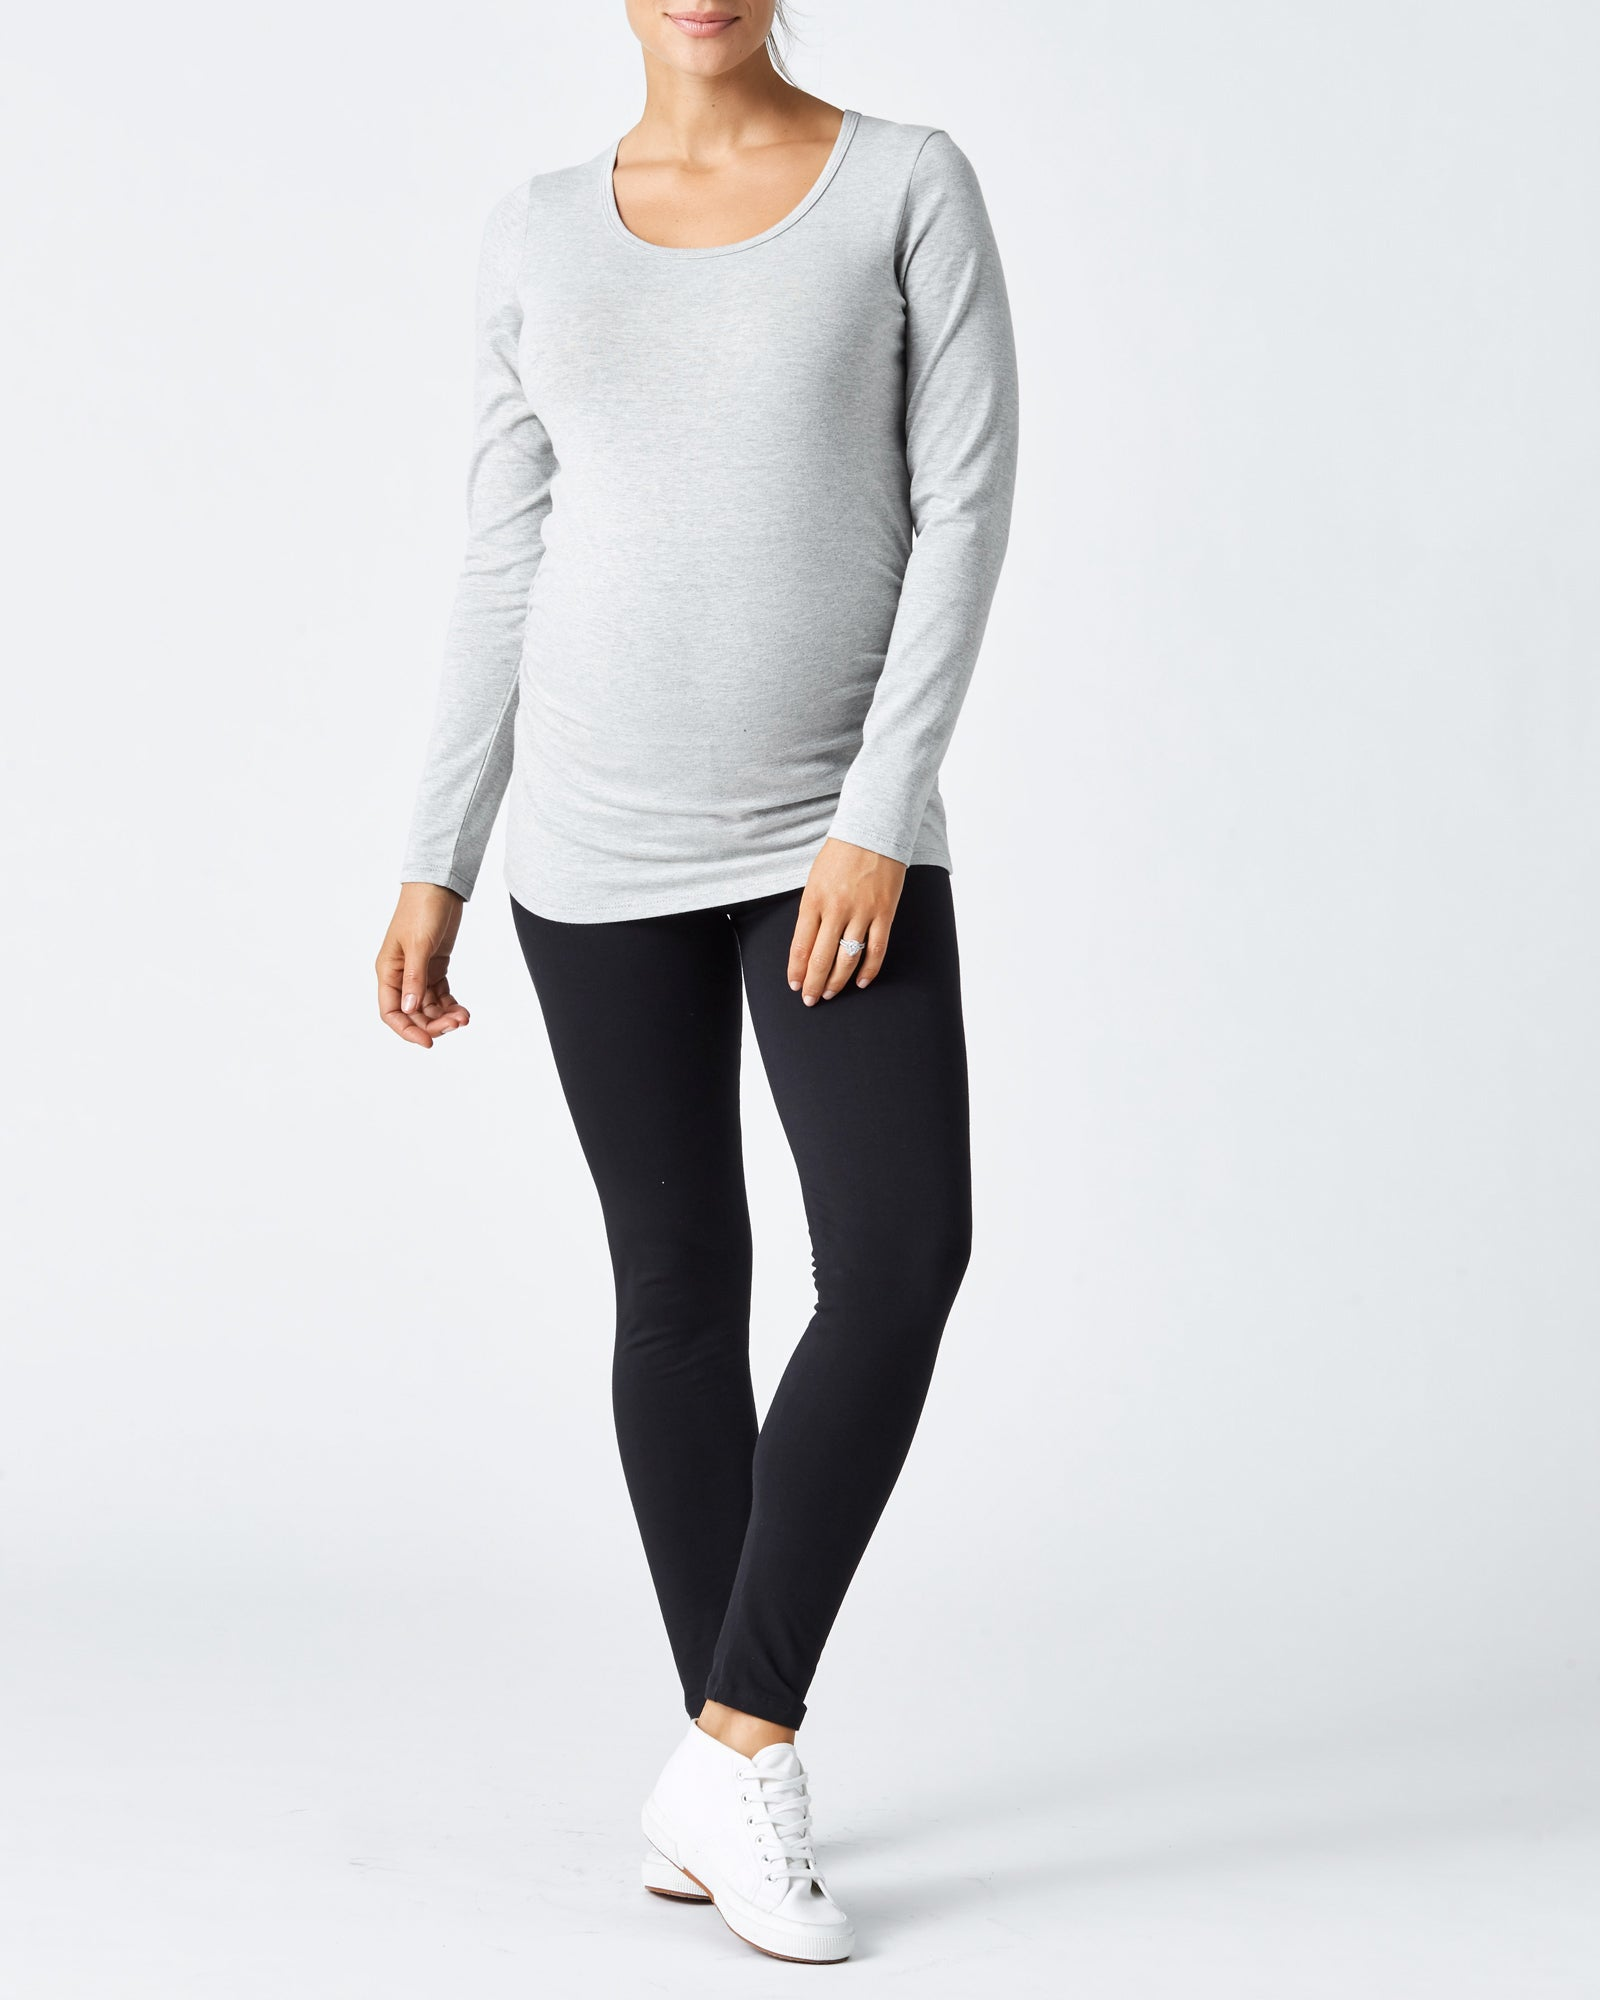 Elli Long Sleeve Top (outlet)